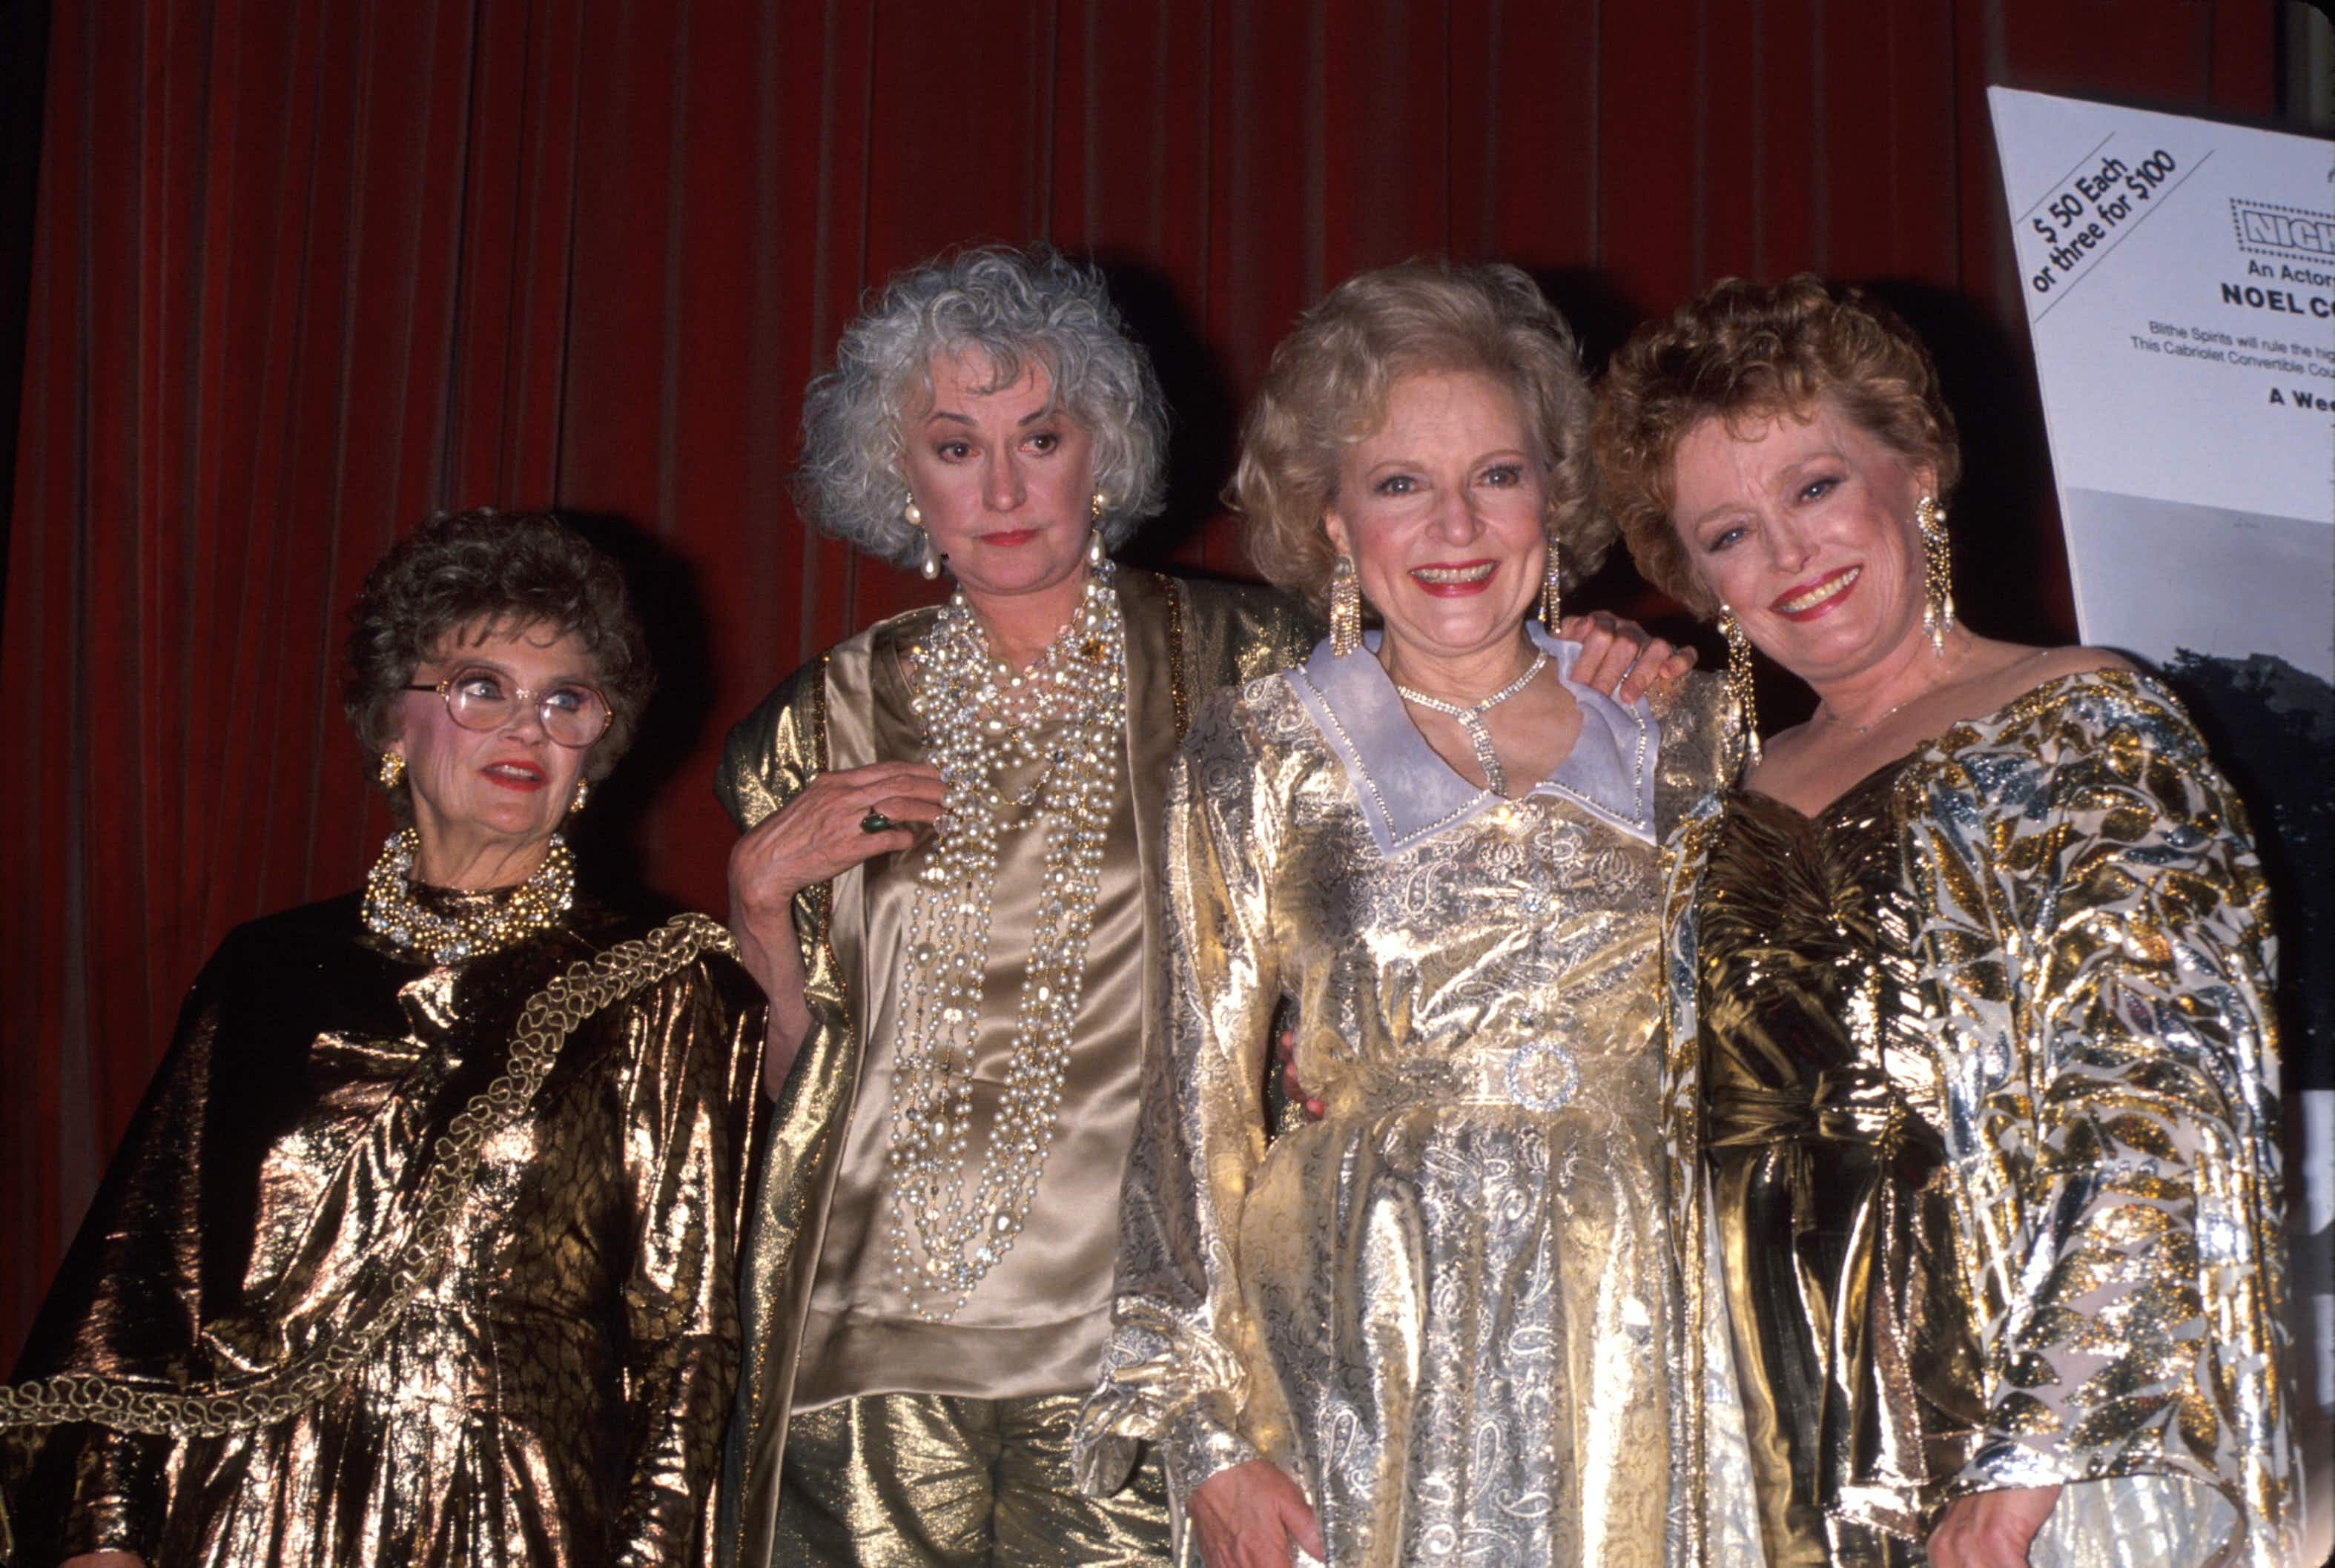 Another Golden Girls cruise is kicking off in 2021 and seats are booking up fast